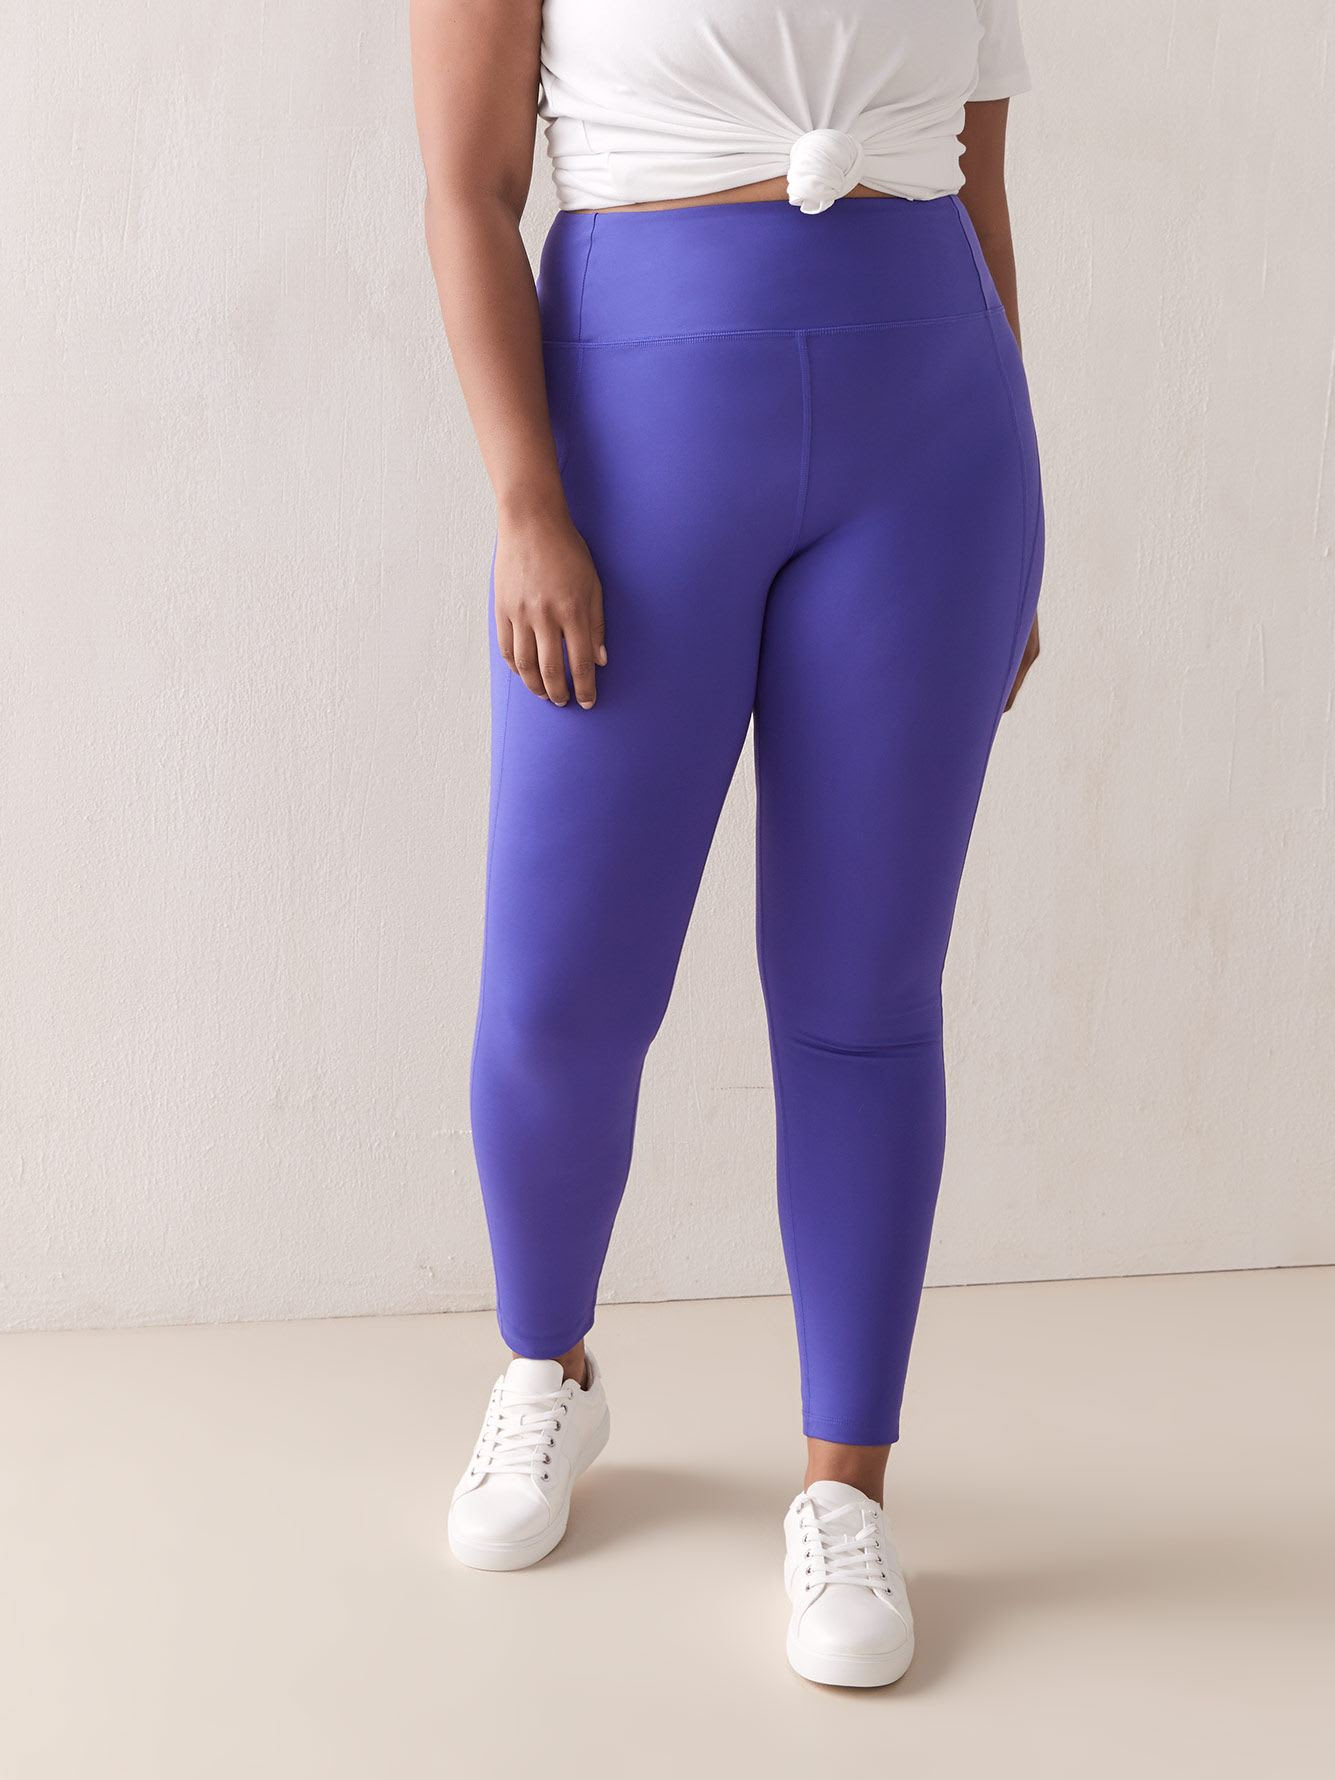 Legging de compression taille haute fashion - Girlfriend Collective